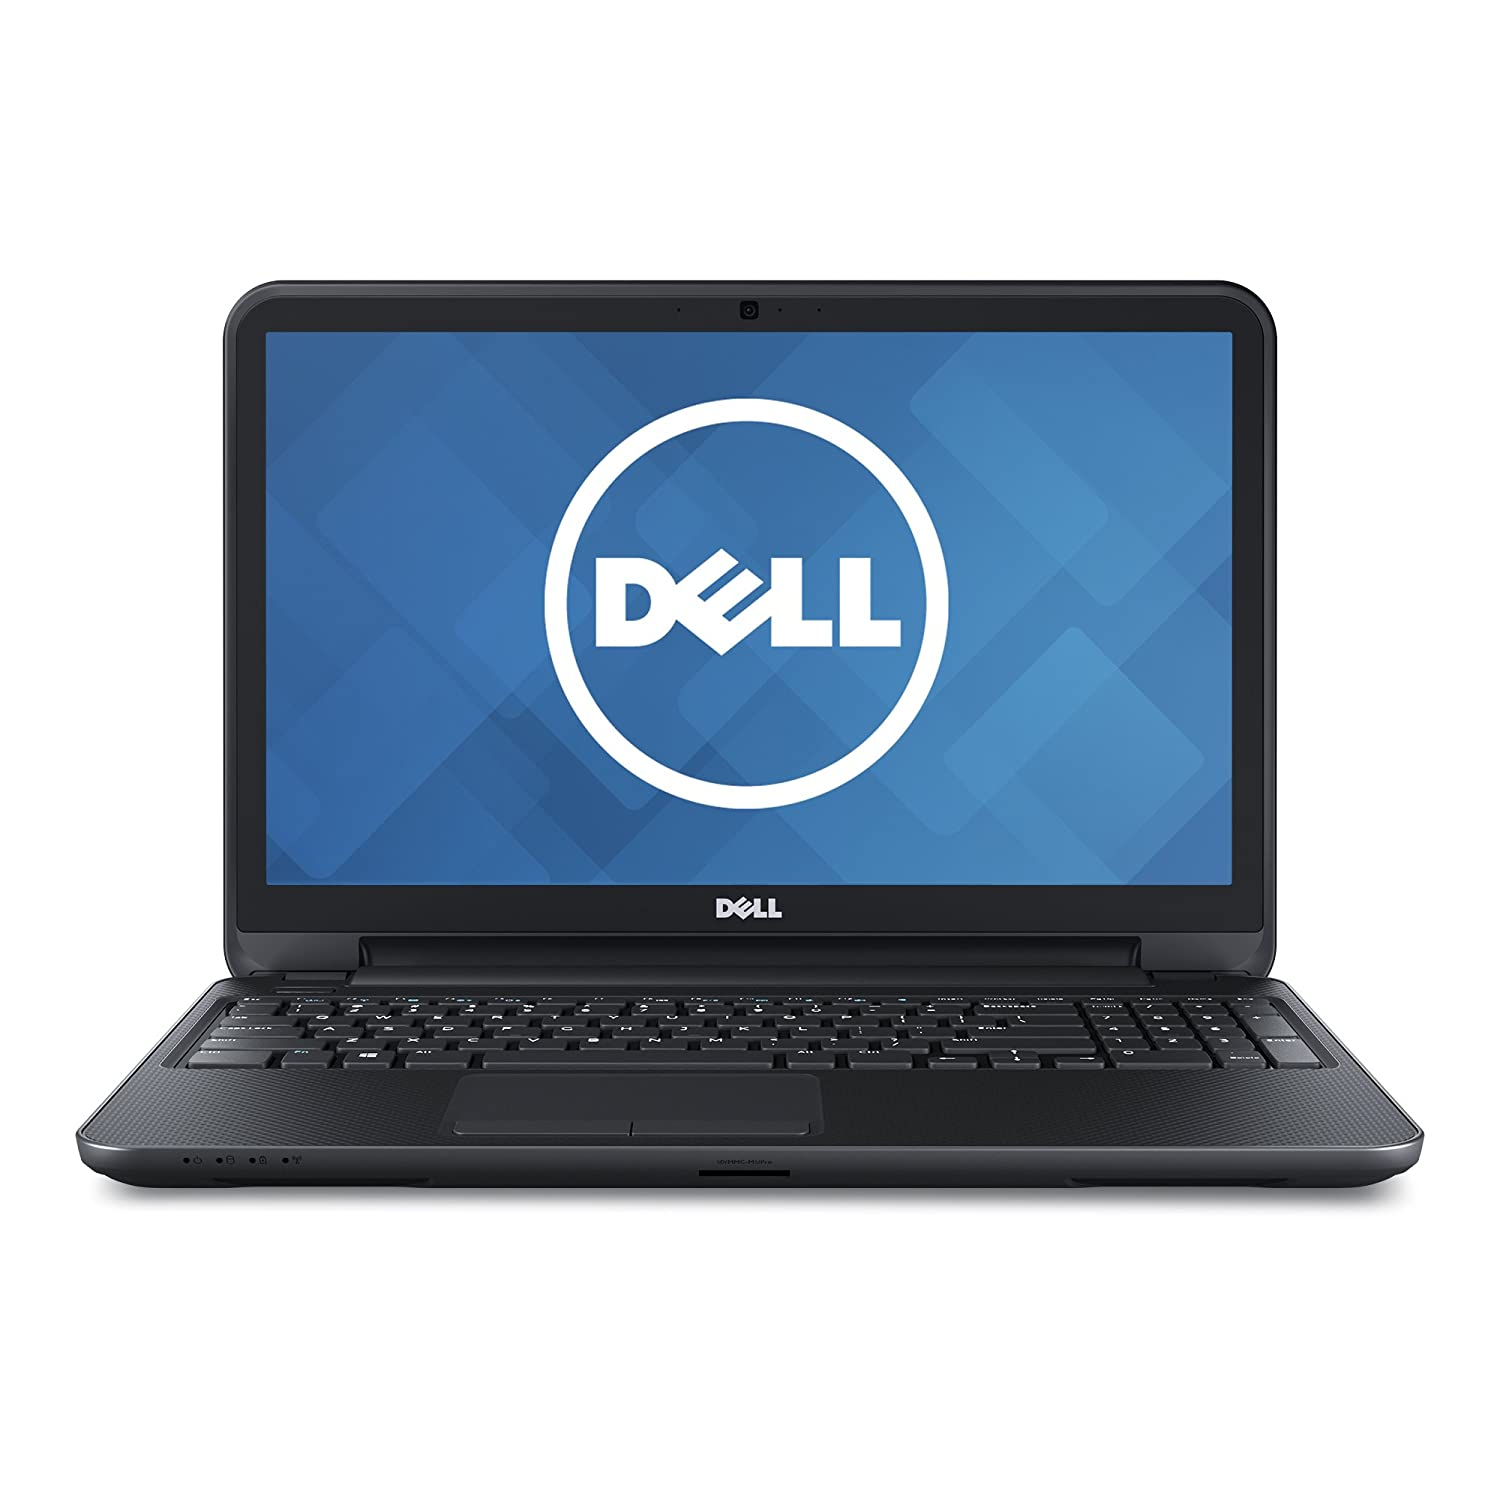 Dell Inspiron 15 i15RVT-13287BLK 15.6-Inch Touchscreen Laptop